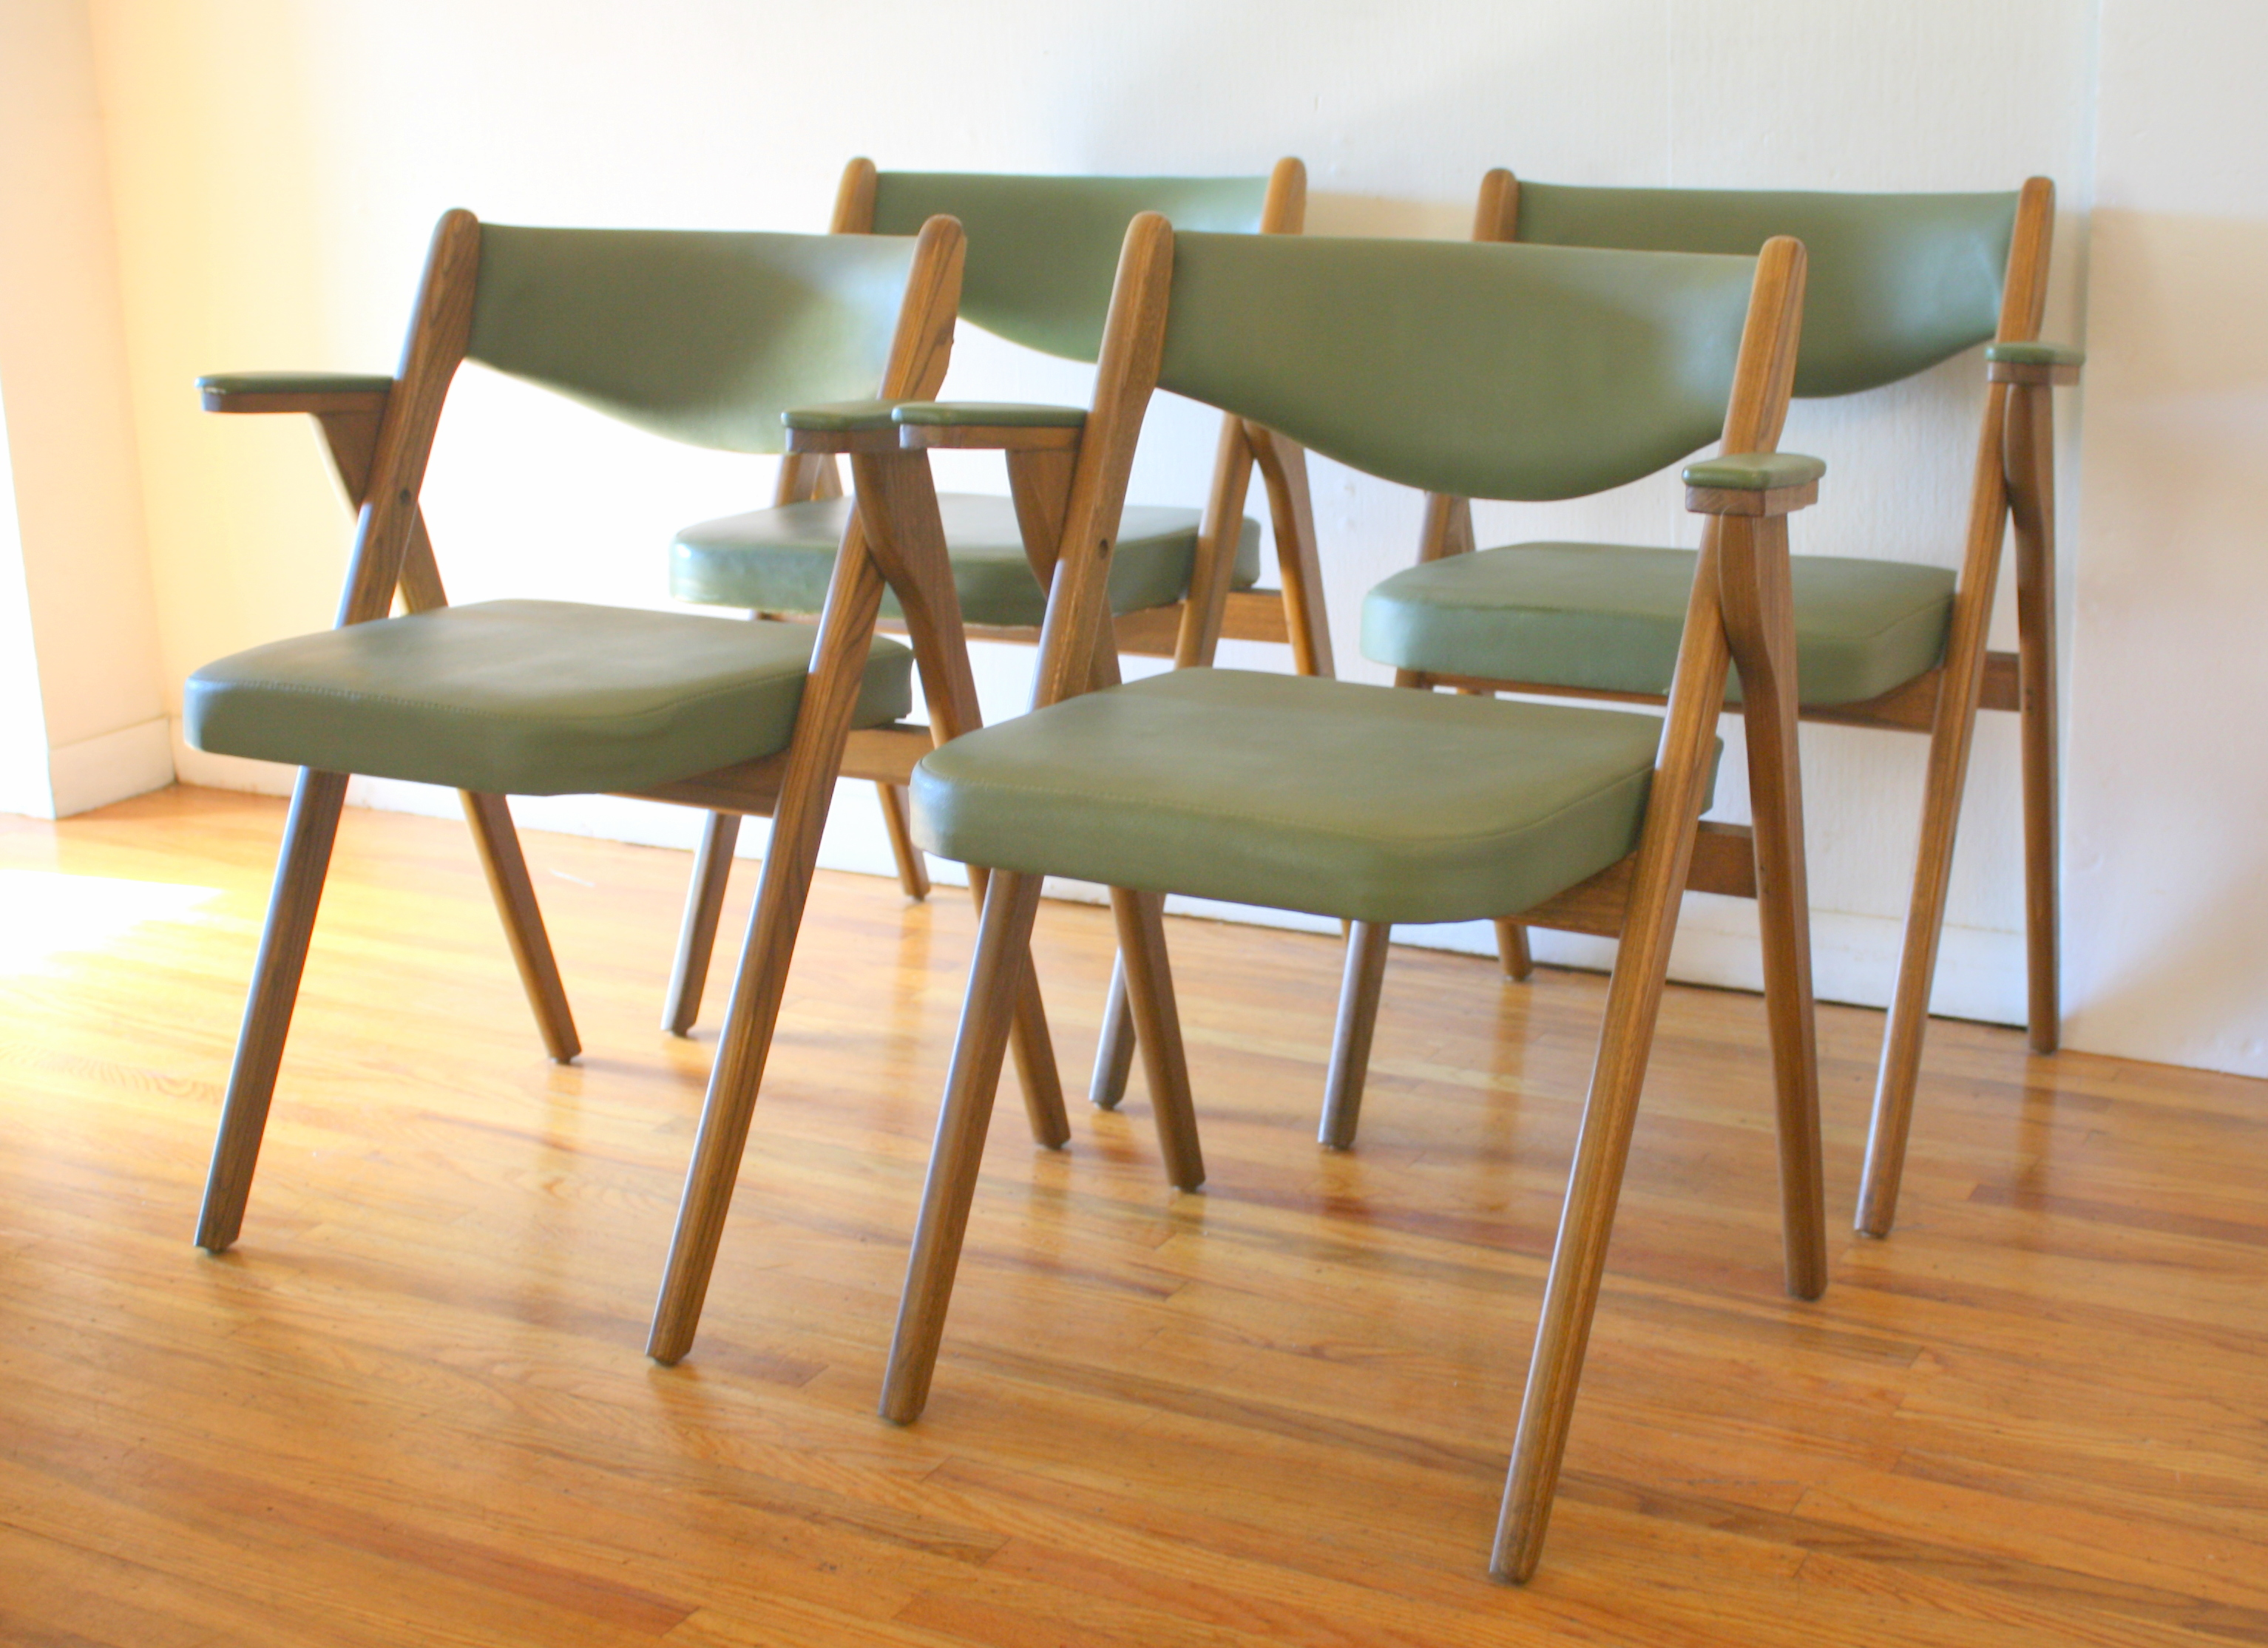 coronet folding chairs chair cover hire farnborough mid century modern avocado by picked vintage 2 jpg